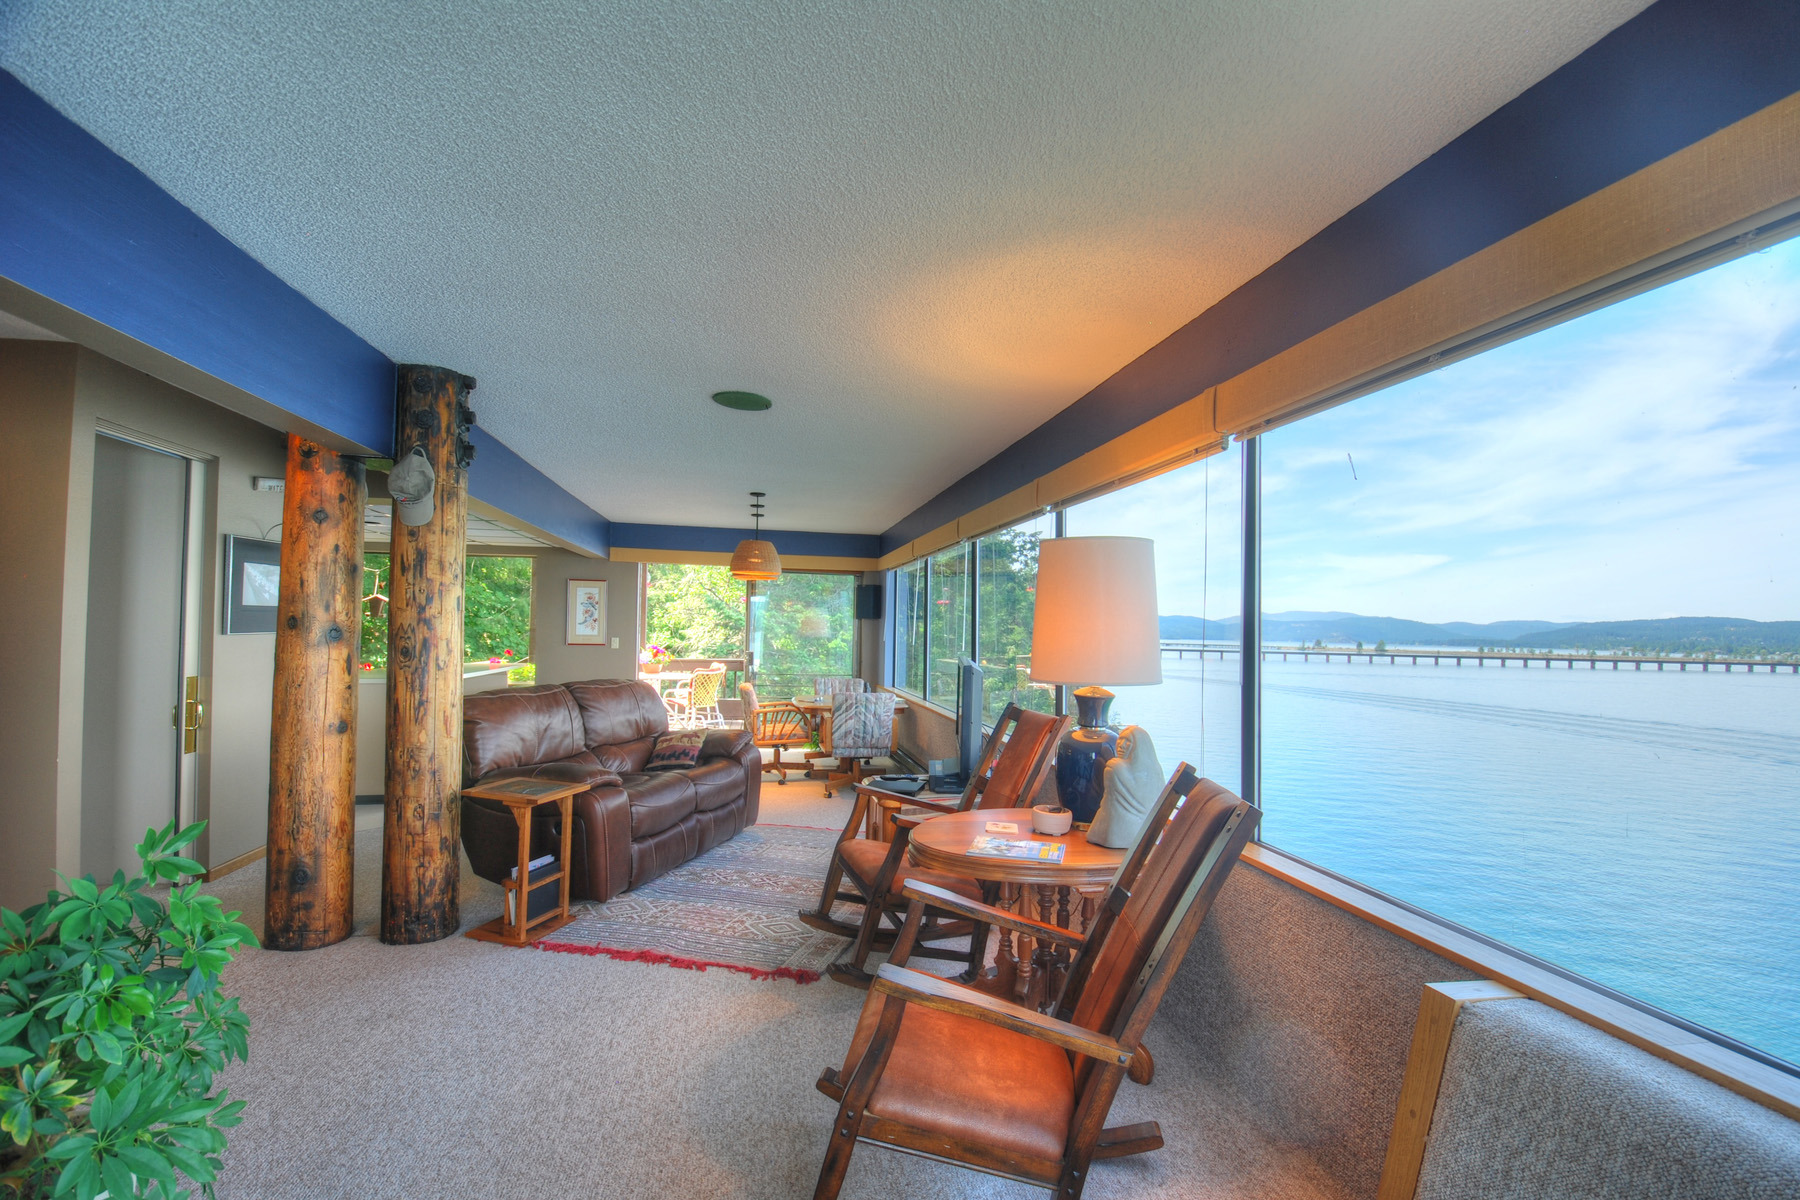 Single Family Home for Sale at Iconic Waterfront Home 3079NNA Bottle Bay Sagle, Idaho, 83860 United States